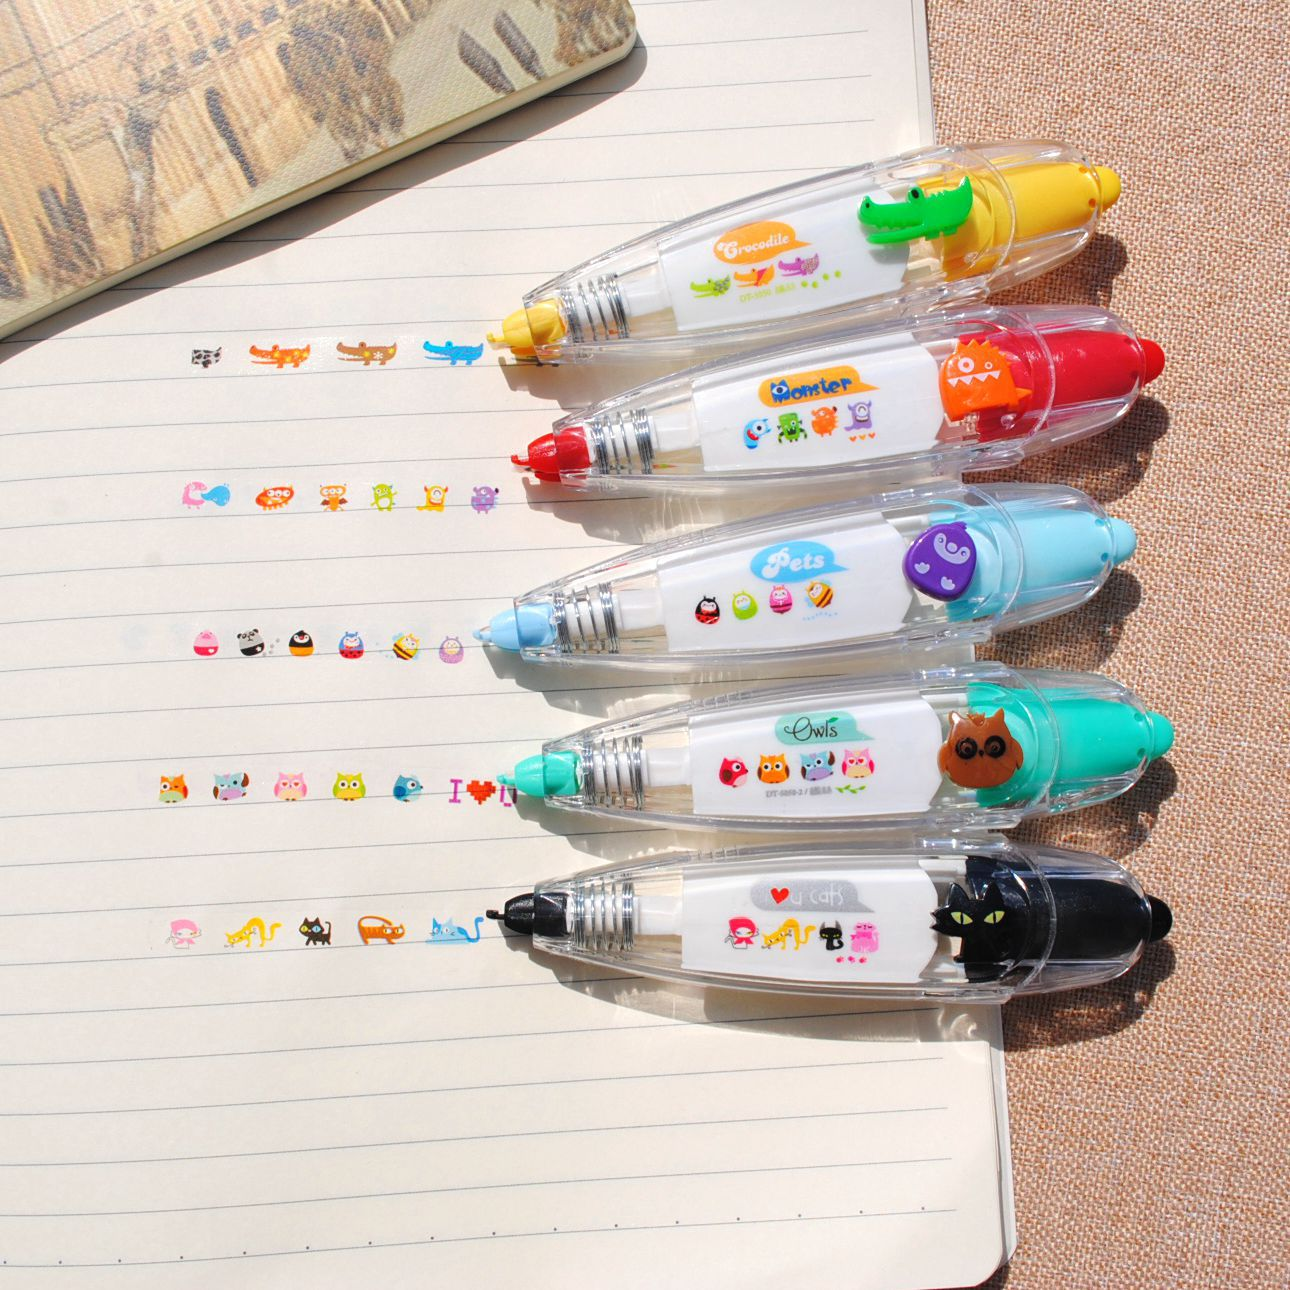 Cute Push Lace Press Type Stationery Pen Correction Tape Diary Scrapbooking Album Decoration Kids Stationery School Supplies